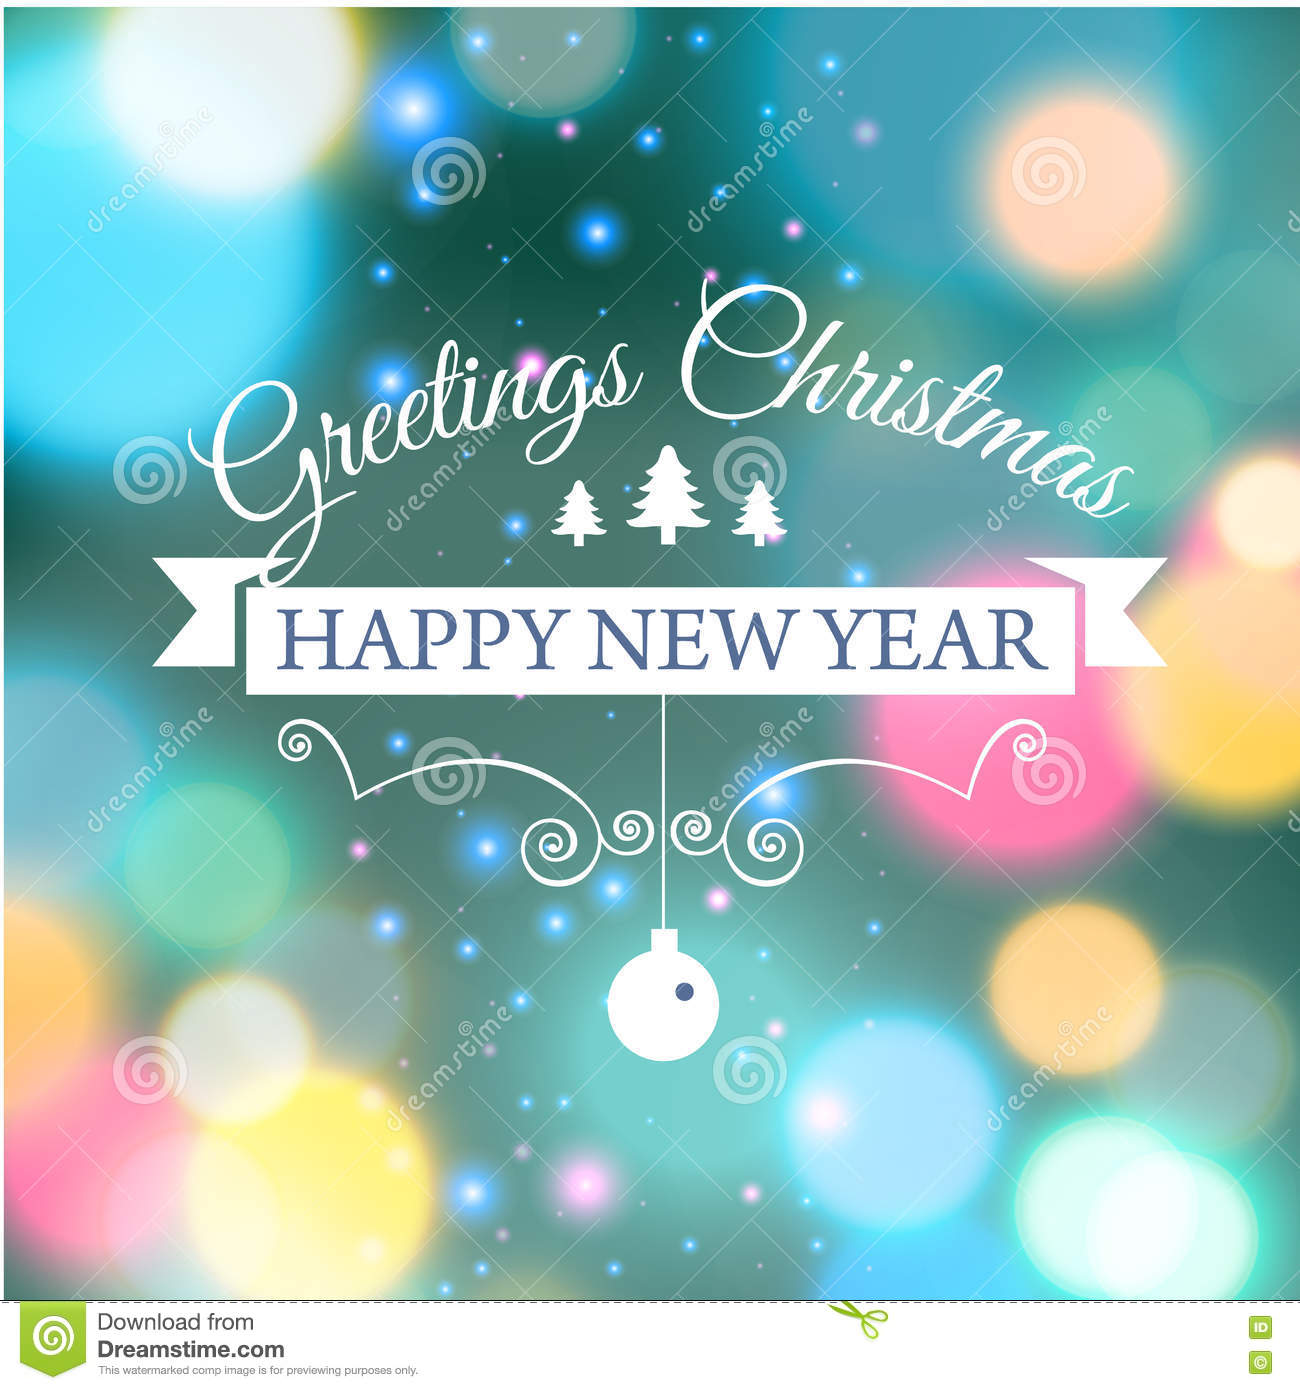 Merry Christmas E Card Template Vector Illustration Stock Vector